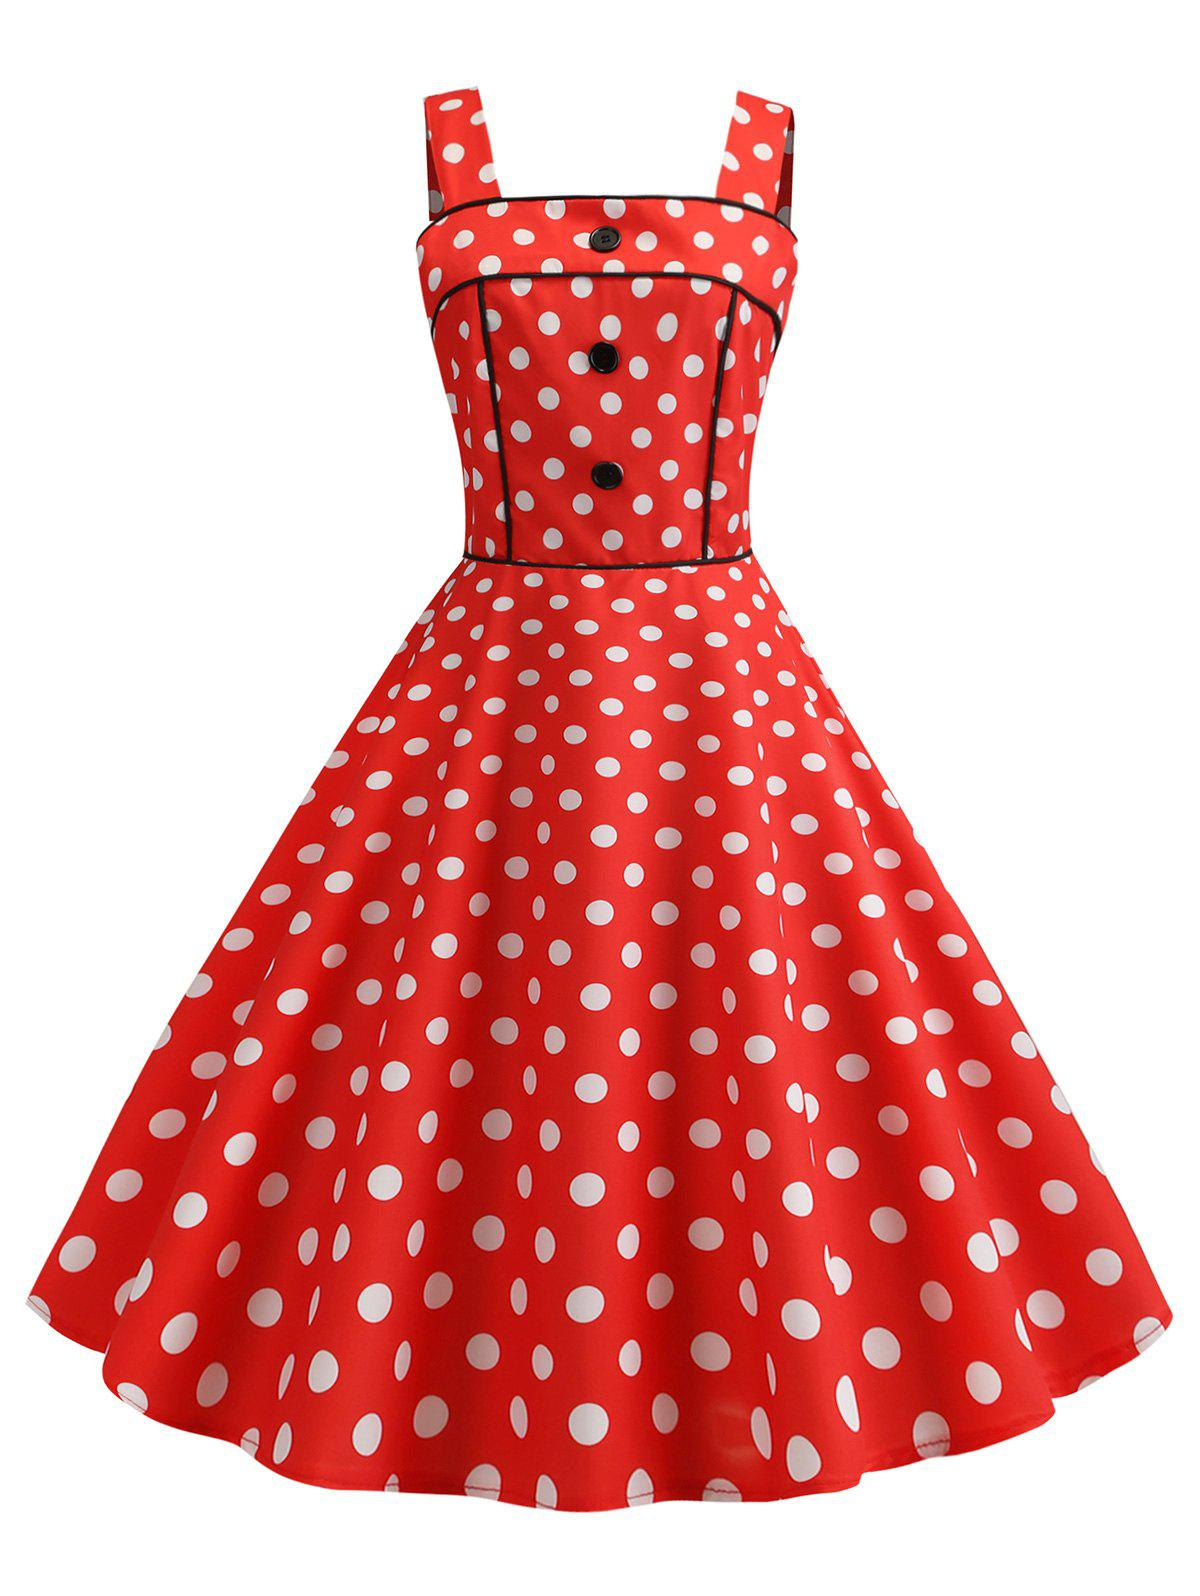 Hot Polka Dot Square Neck Party Dress